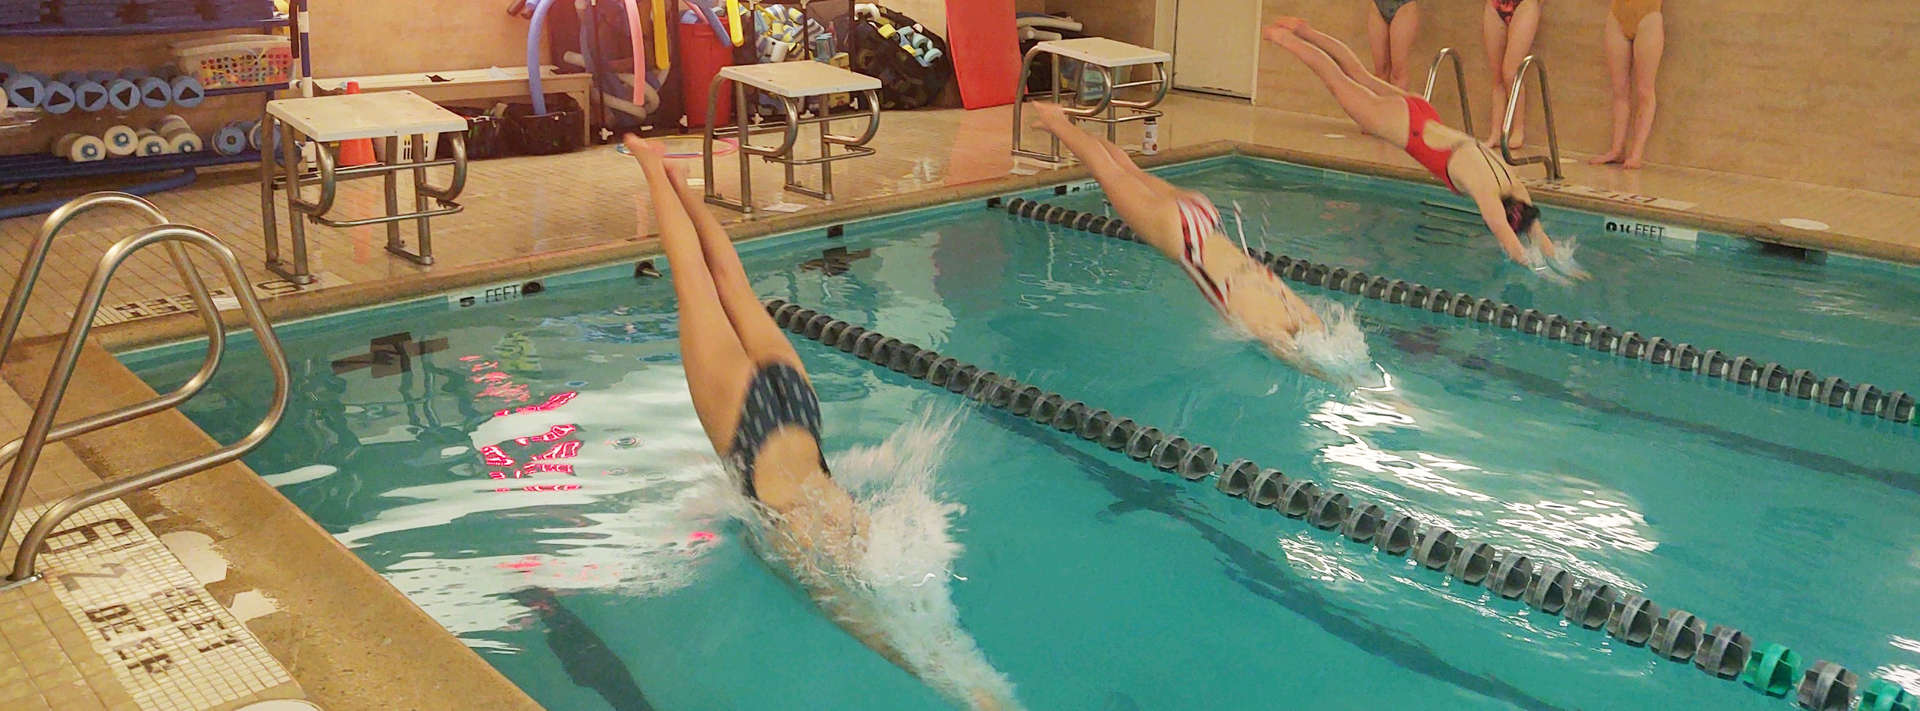 3 swimmers diving into pool